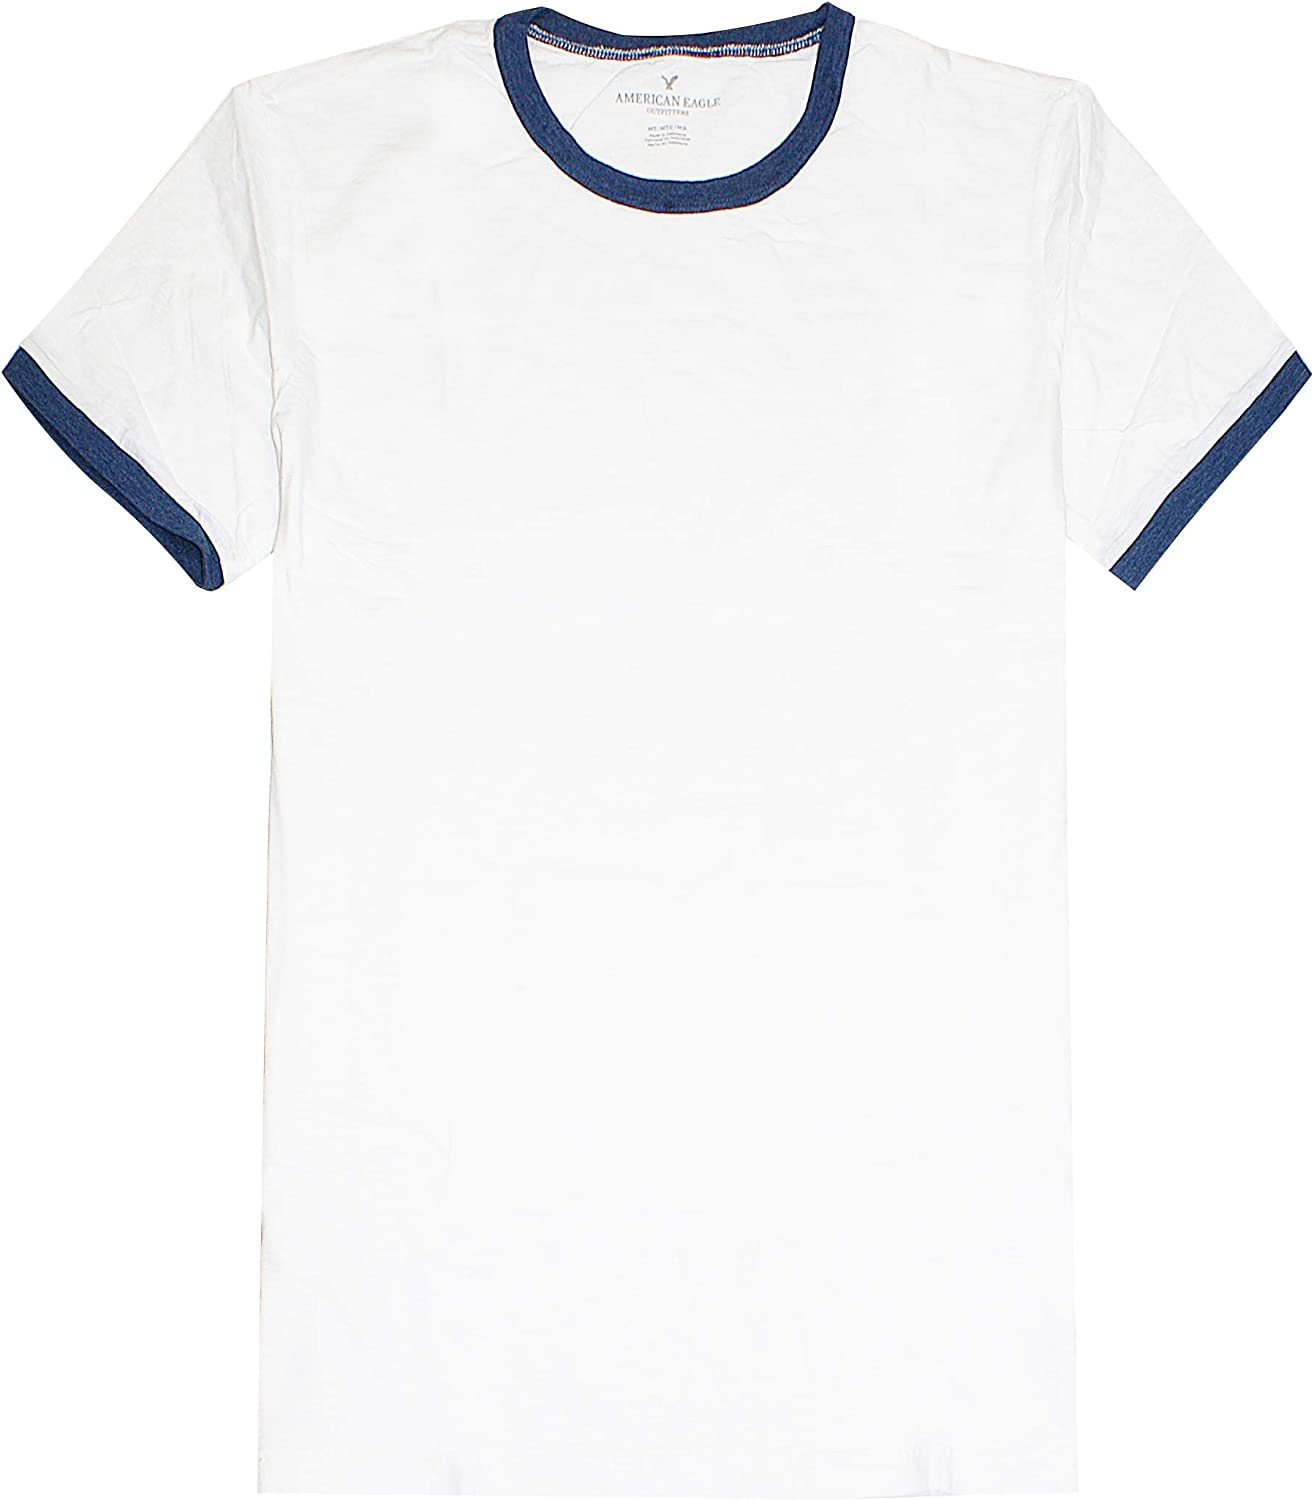 American Eagle Men's New Graphic T-Shirt (1A)